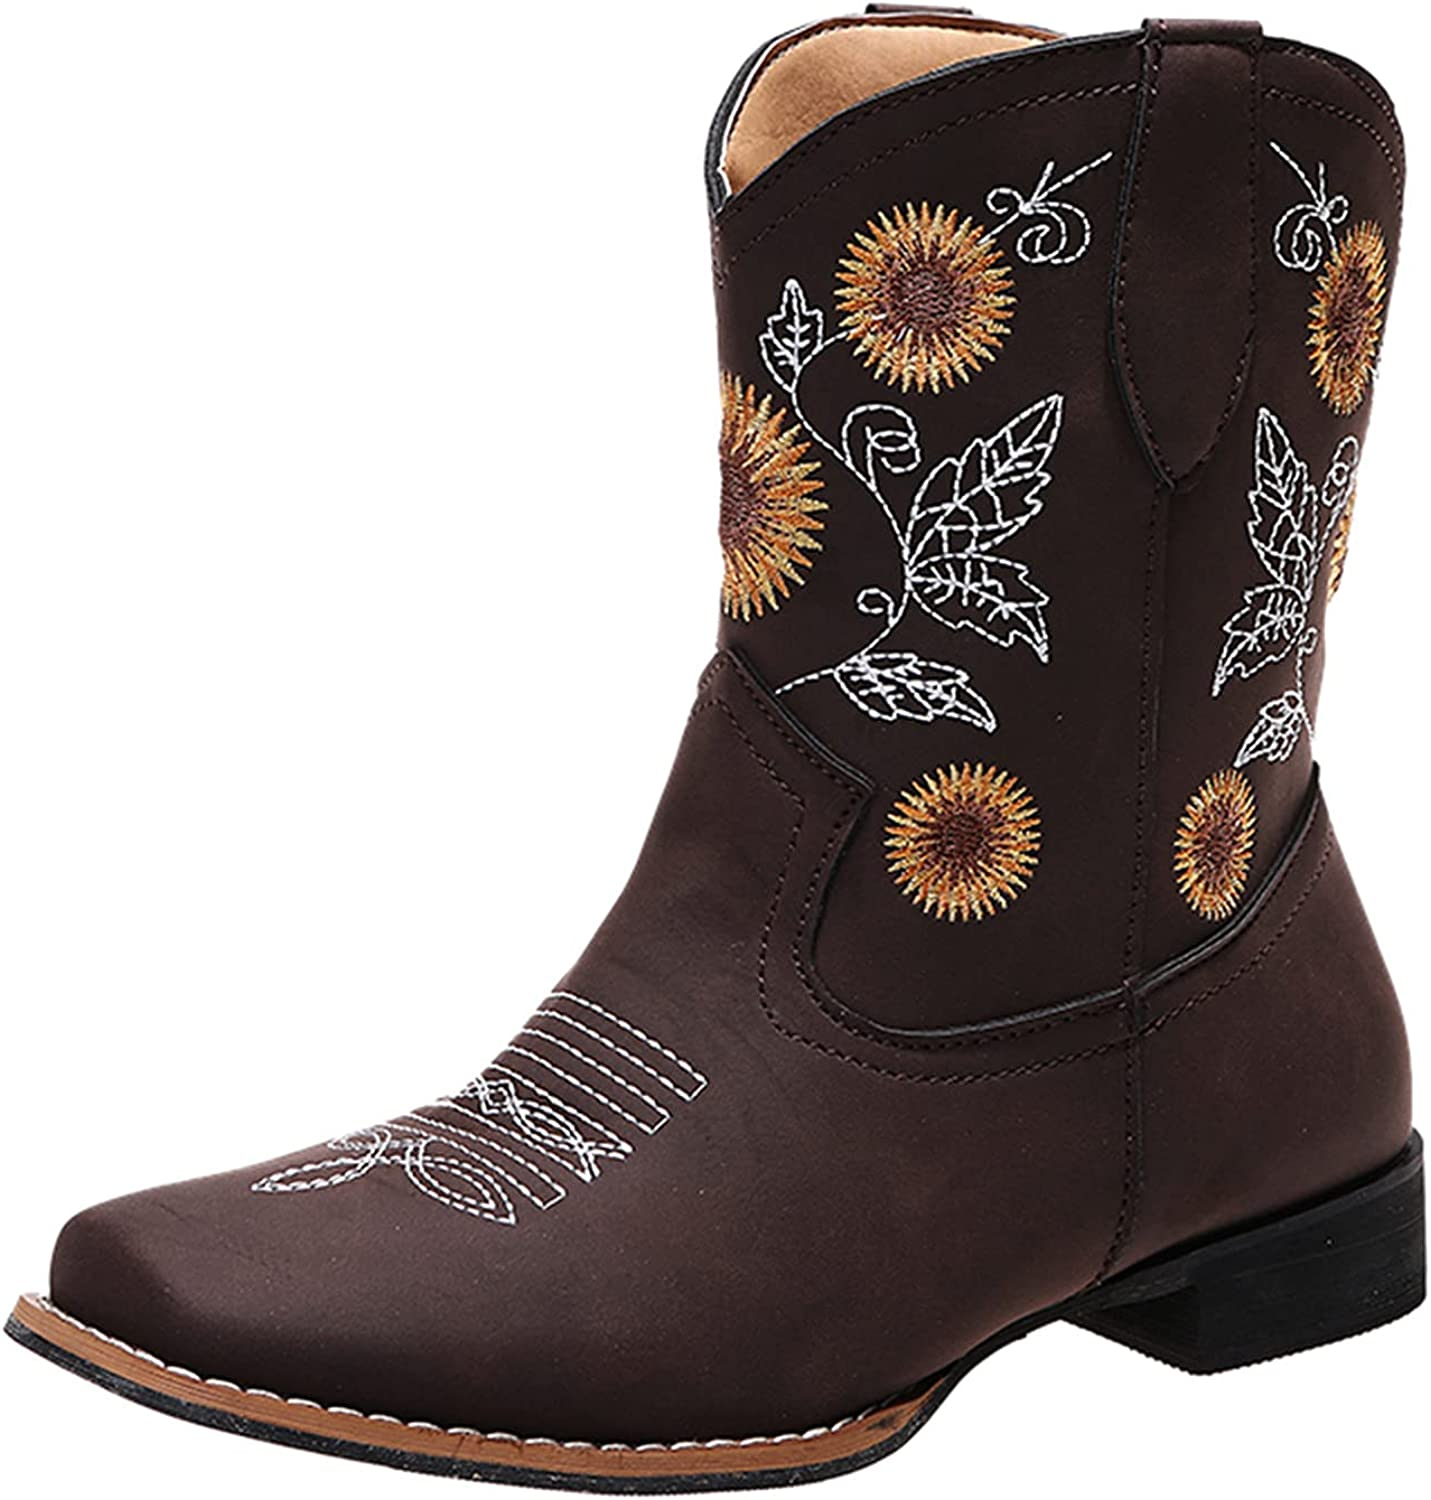 Sale SALE% OFF Women's Ankle 40% OFF Cheap Sale Boots Fashion Square Embroidered Et Large Size Toe